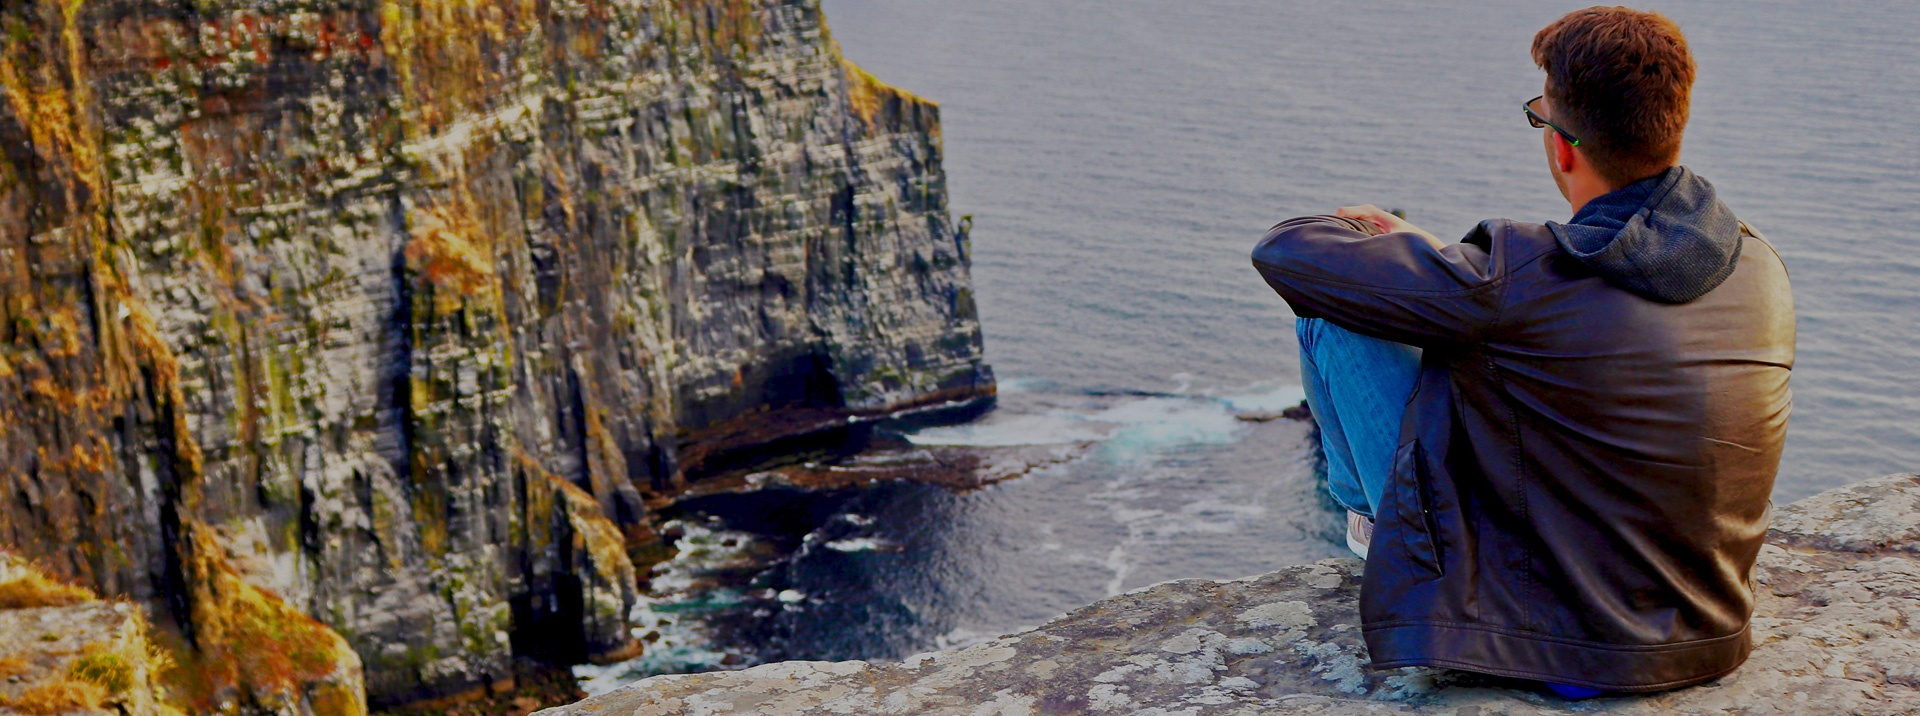 Dublin intern at Cliffs of Moher